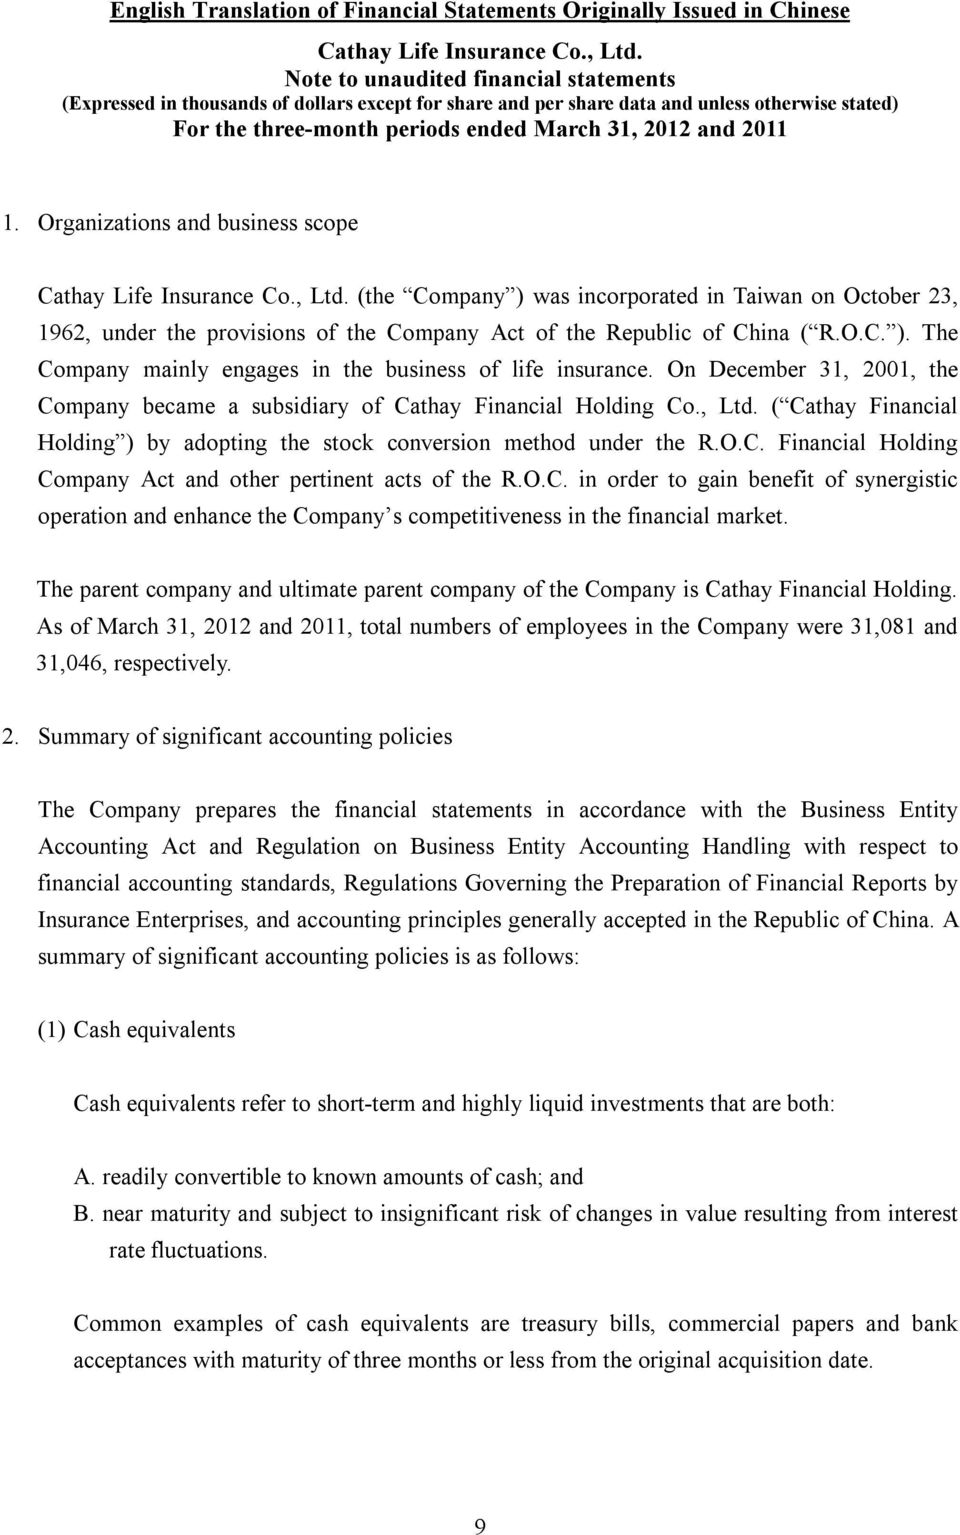 On December 31, 2001, the Company became a subsidiary of Cathay Financial Holding Co., Ltd. ( Cathay Financial Holding ) by adopting the stock conversion method under the R.O.C. Financial Holding Company Act and other pertinent acts of the R.